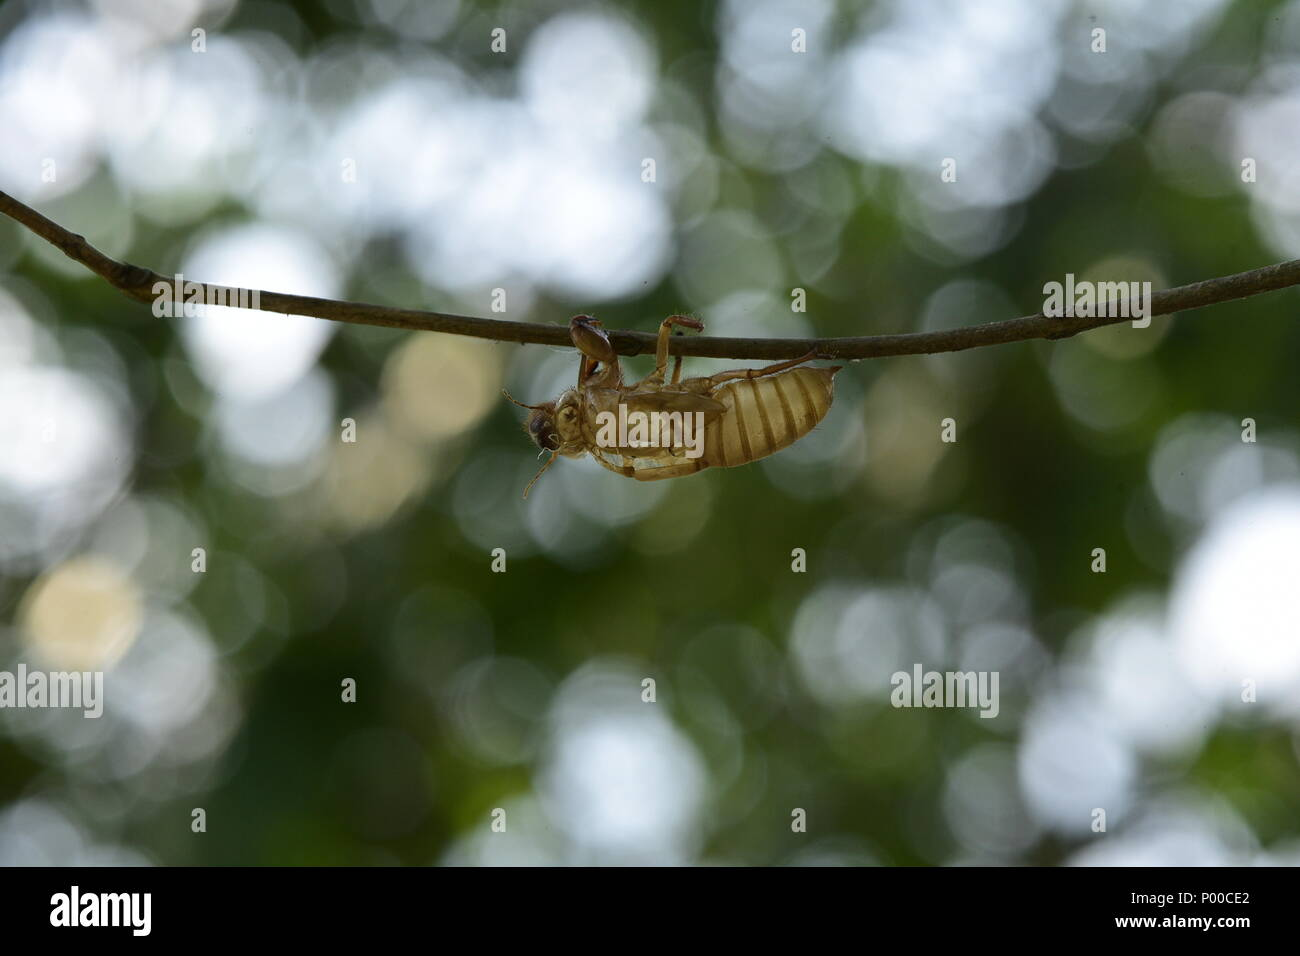 Cicada In The Wildlife Nature Habitat Using As A Background